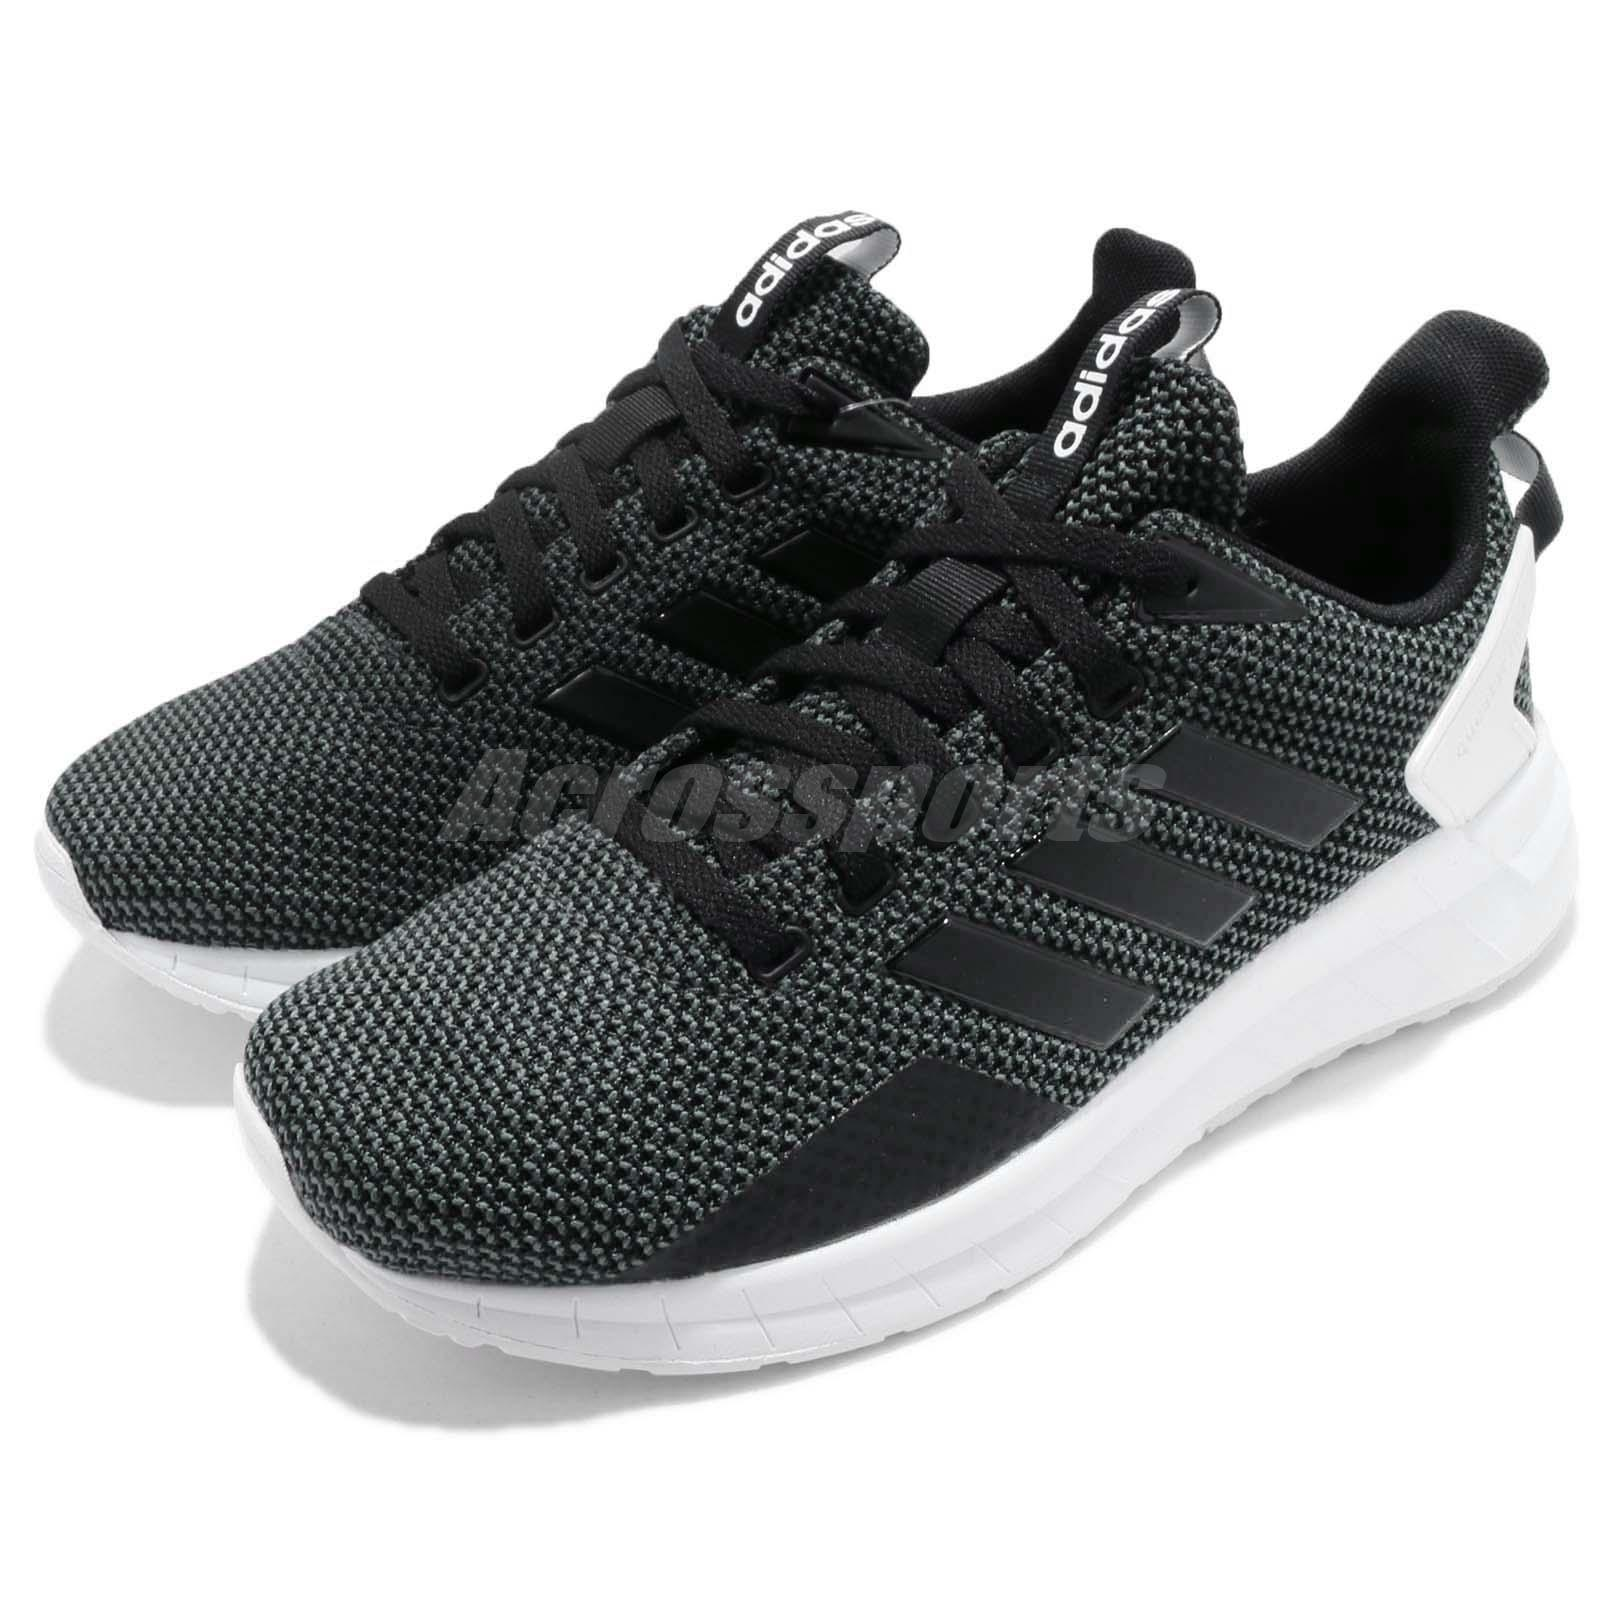 Details about adidas Questar Ride Carbon Black Women Running Shoes Sneakers  DB1308 f582bc6b8